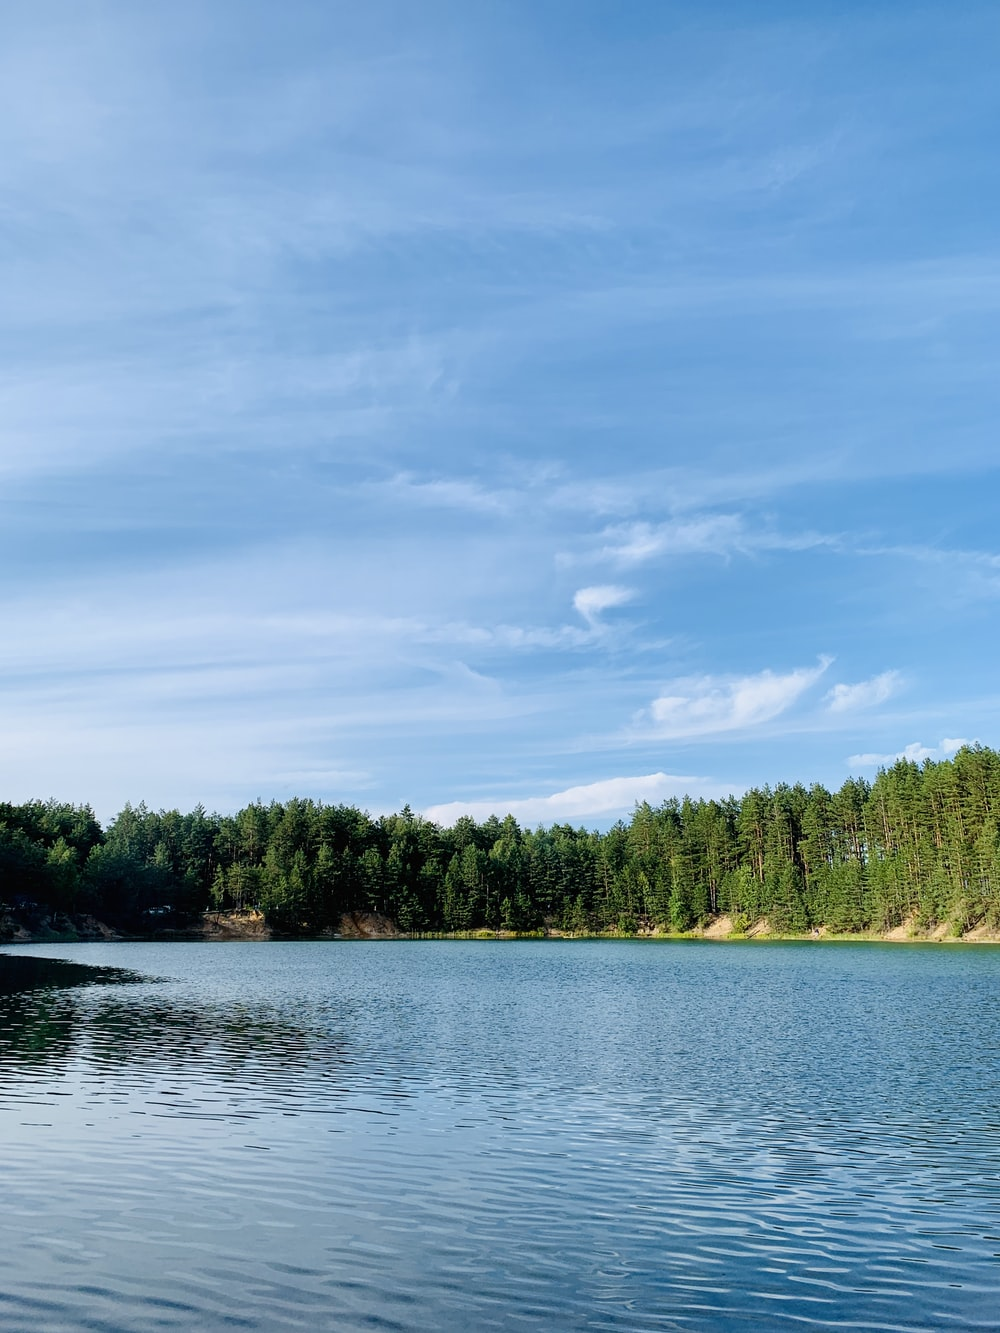 body of water near green trees under blue sky at daytime